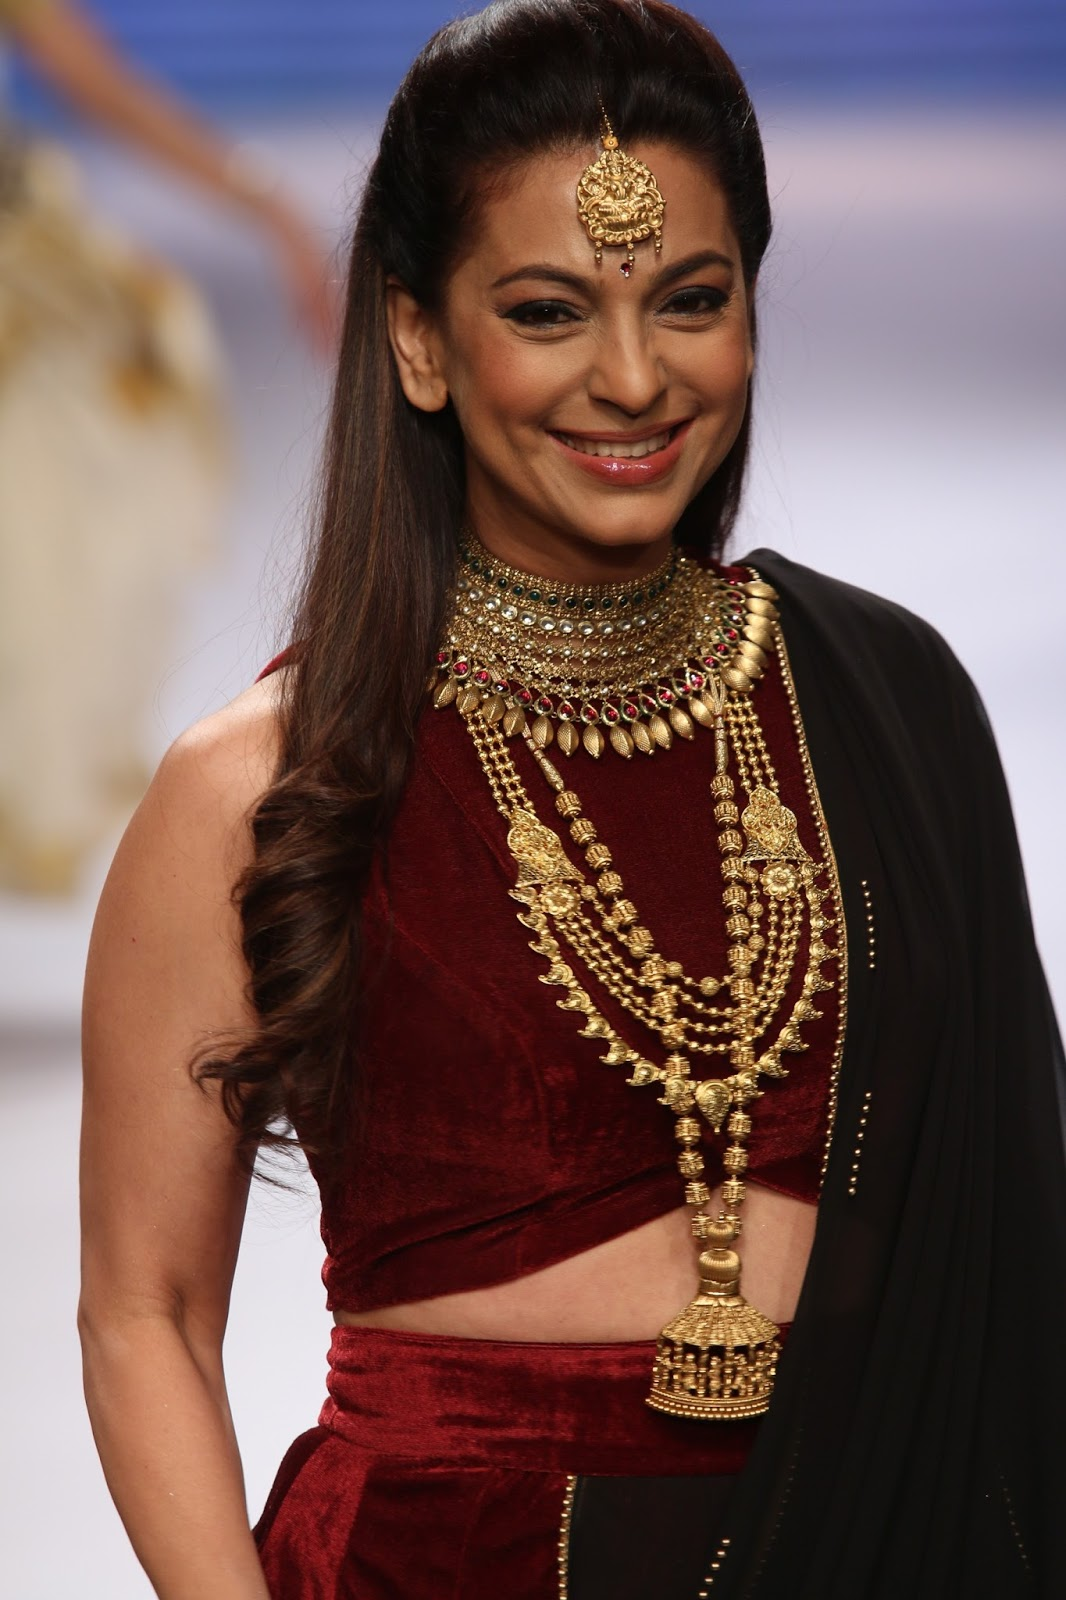 THE SENSATIONAL DIVYAM COLLECTION FROM TANISHQ CLOSED DAY ONE AT THE